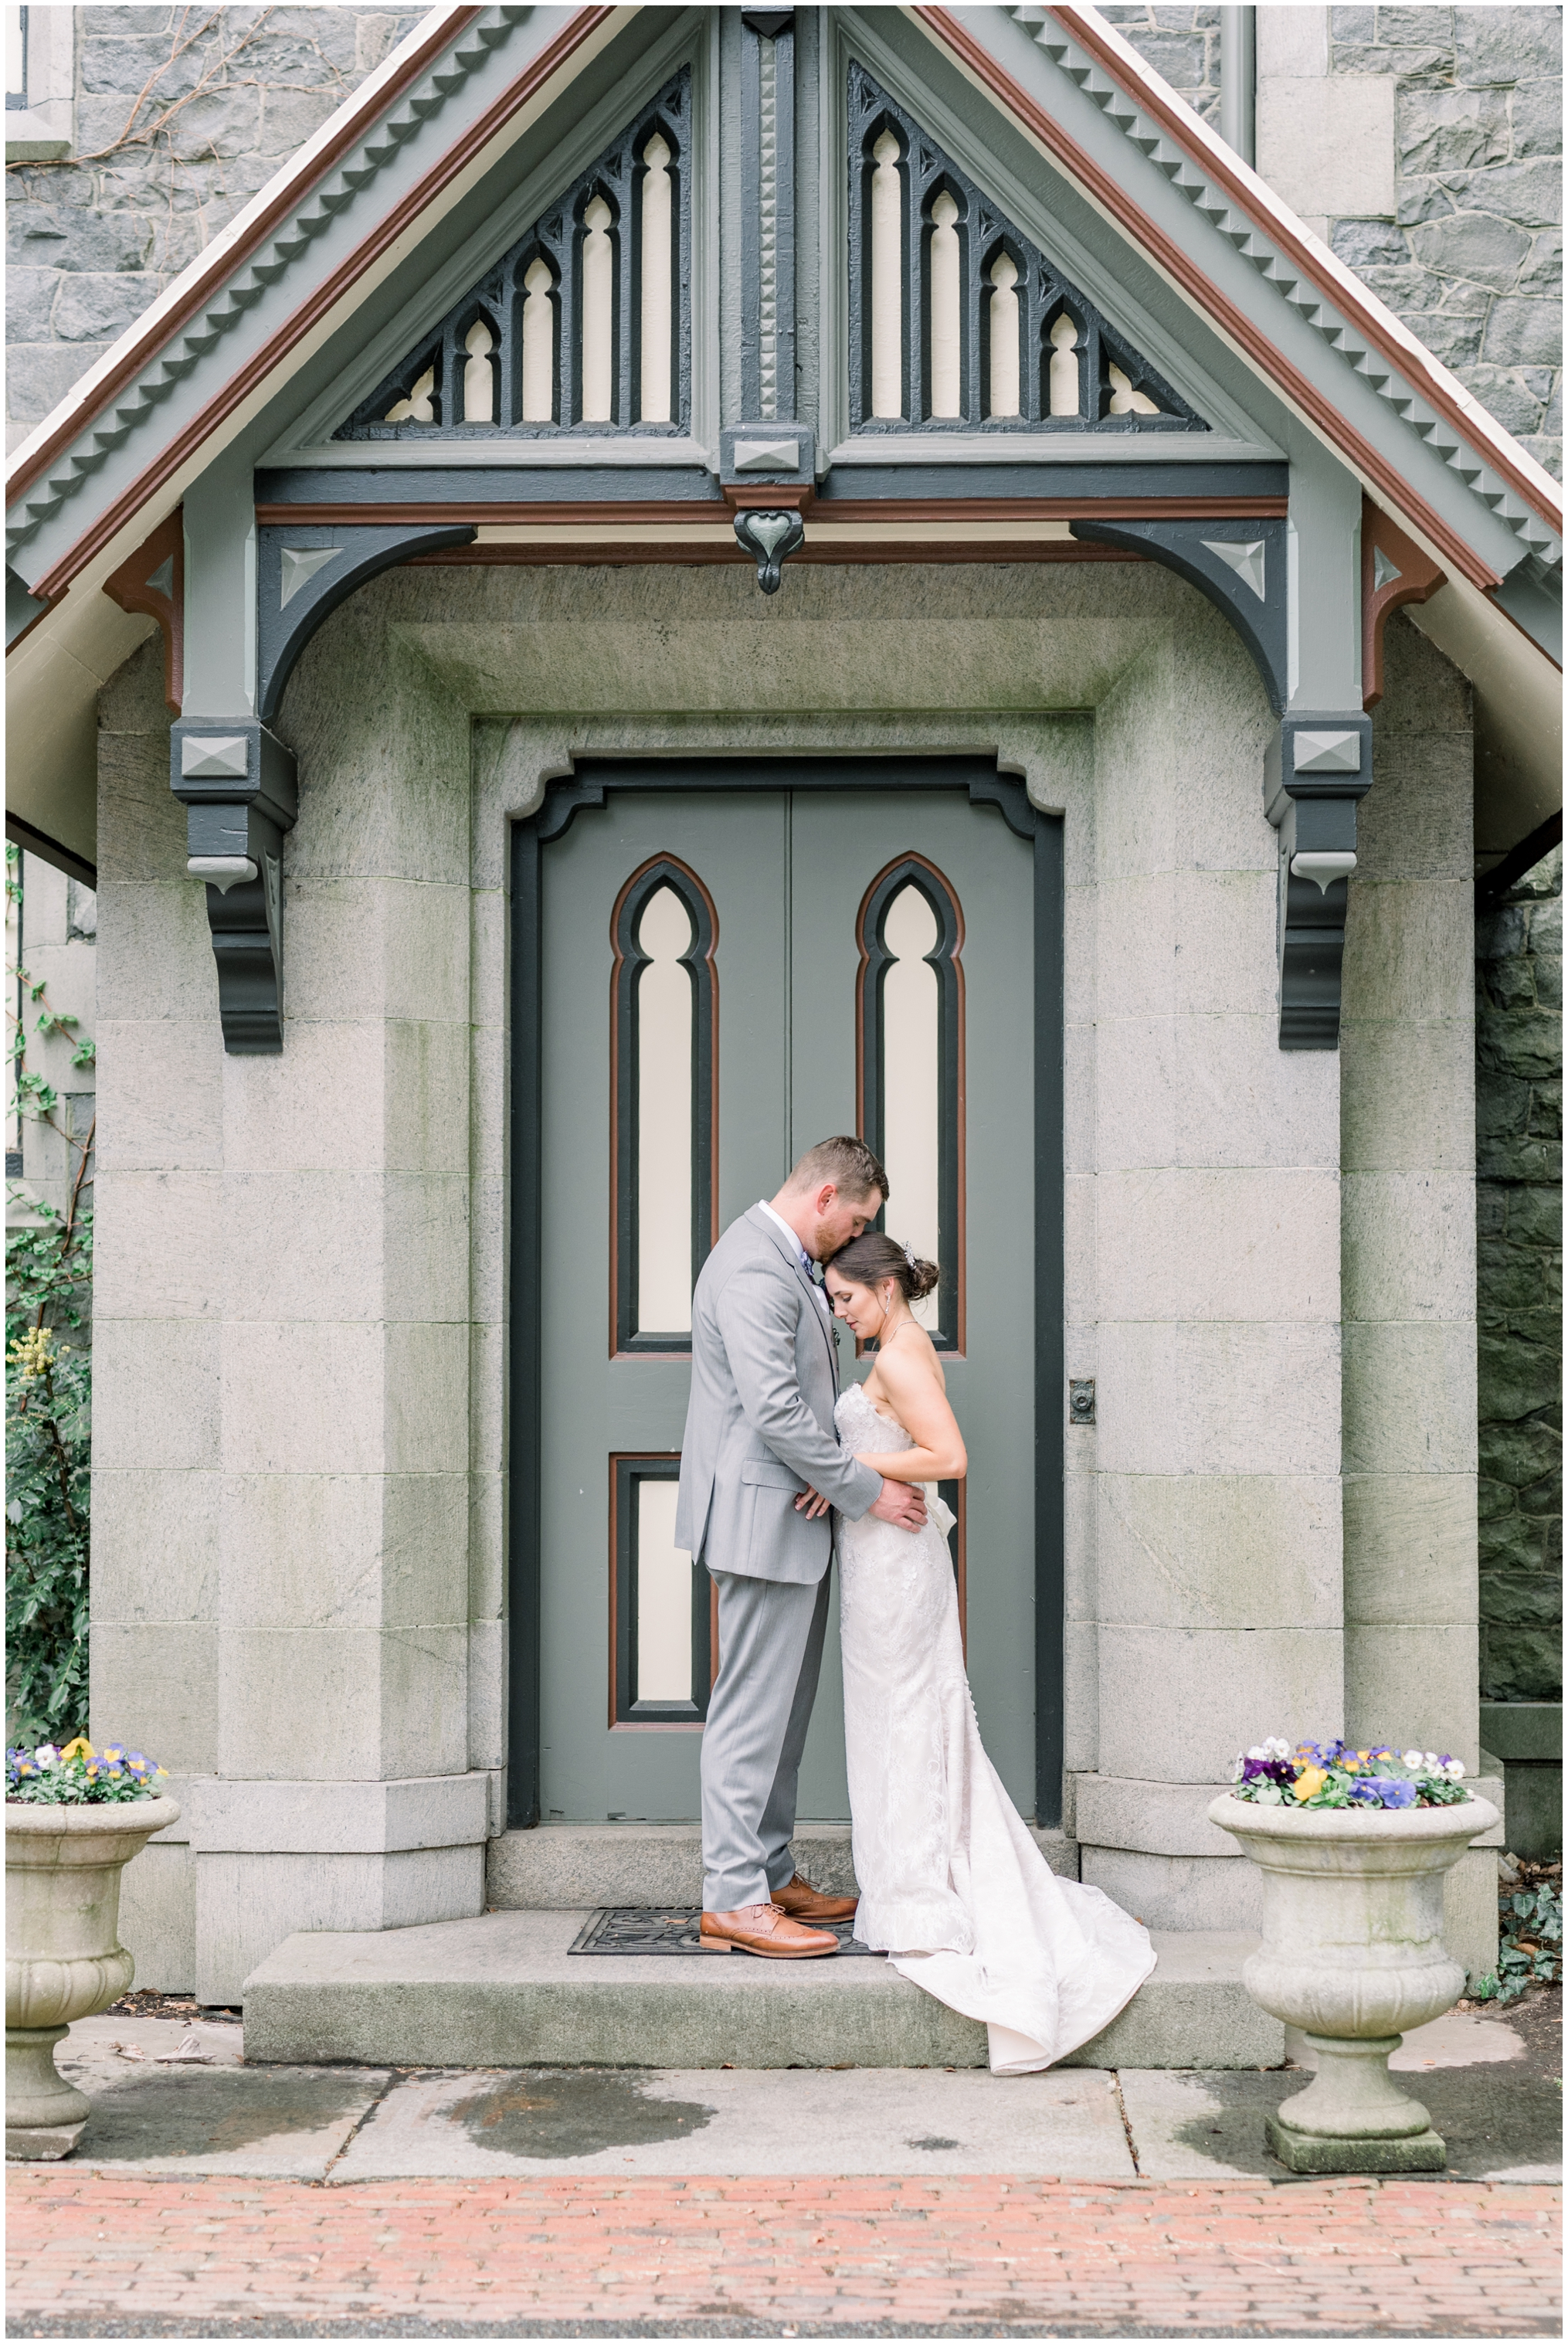 Krista Brackin Photography | April Wedding at The Carriage House at Rockwood Park_0082.jpg